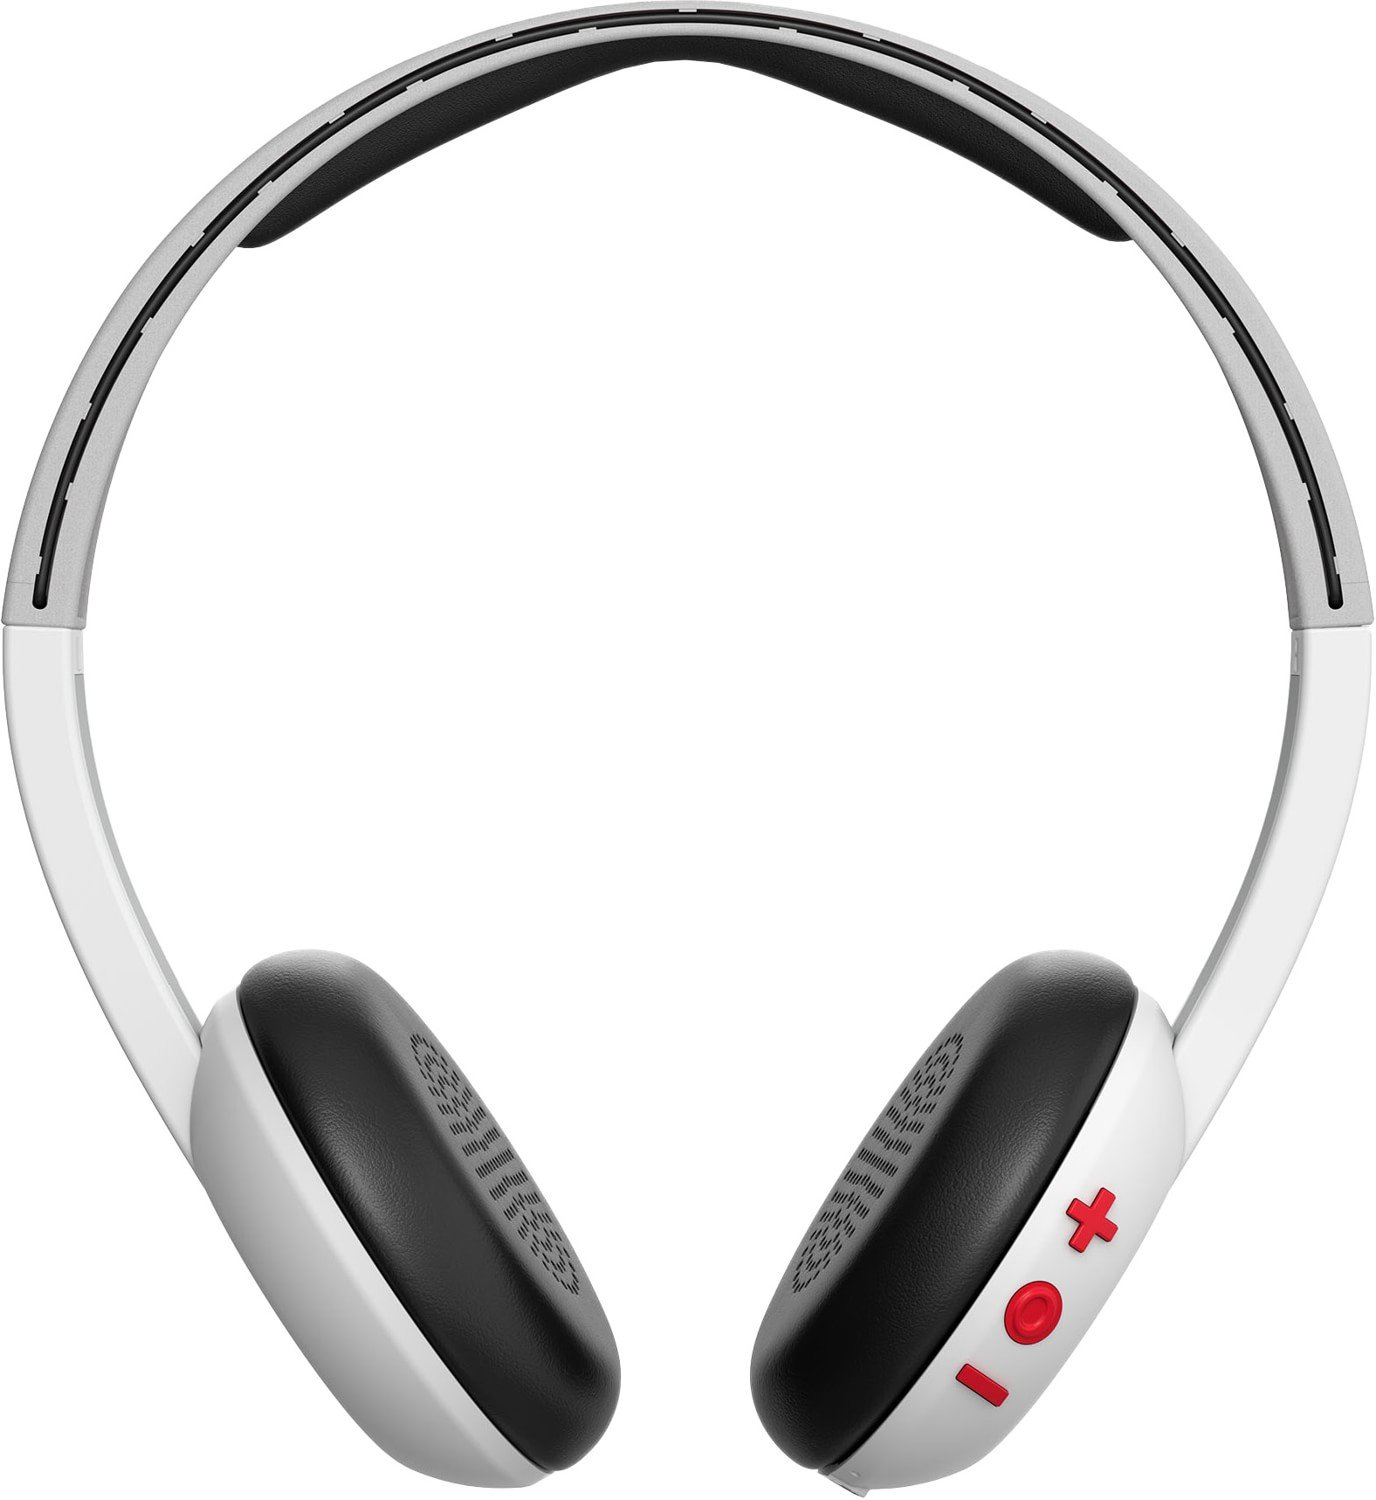 image of uproar wireless headphones